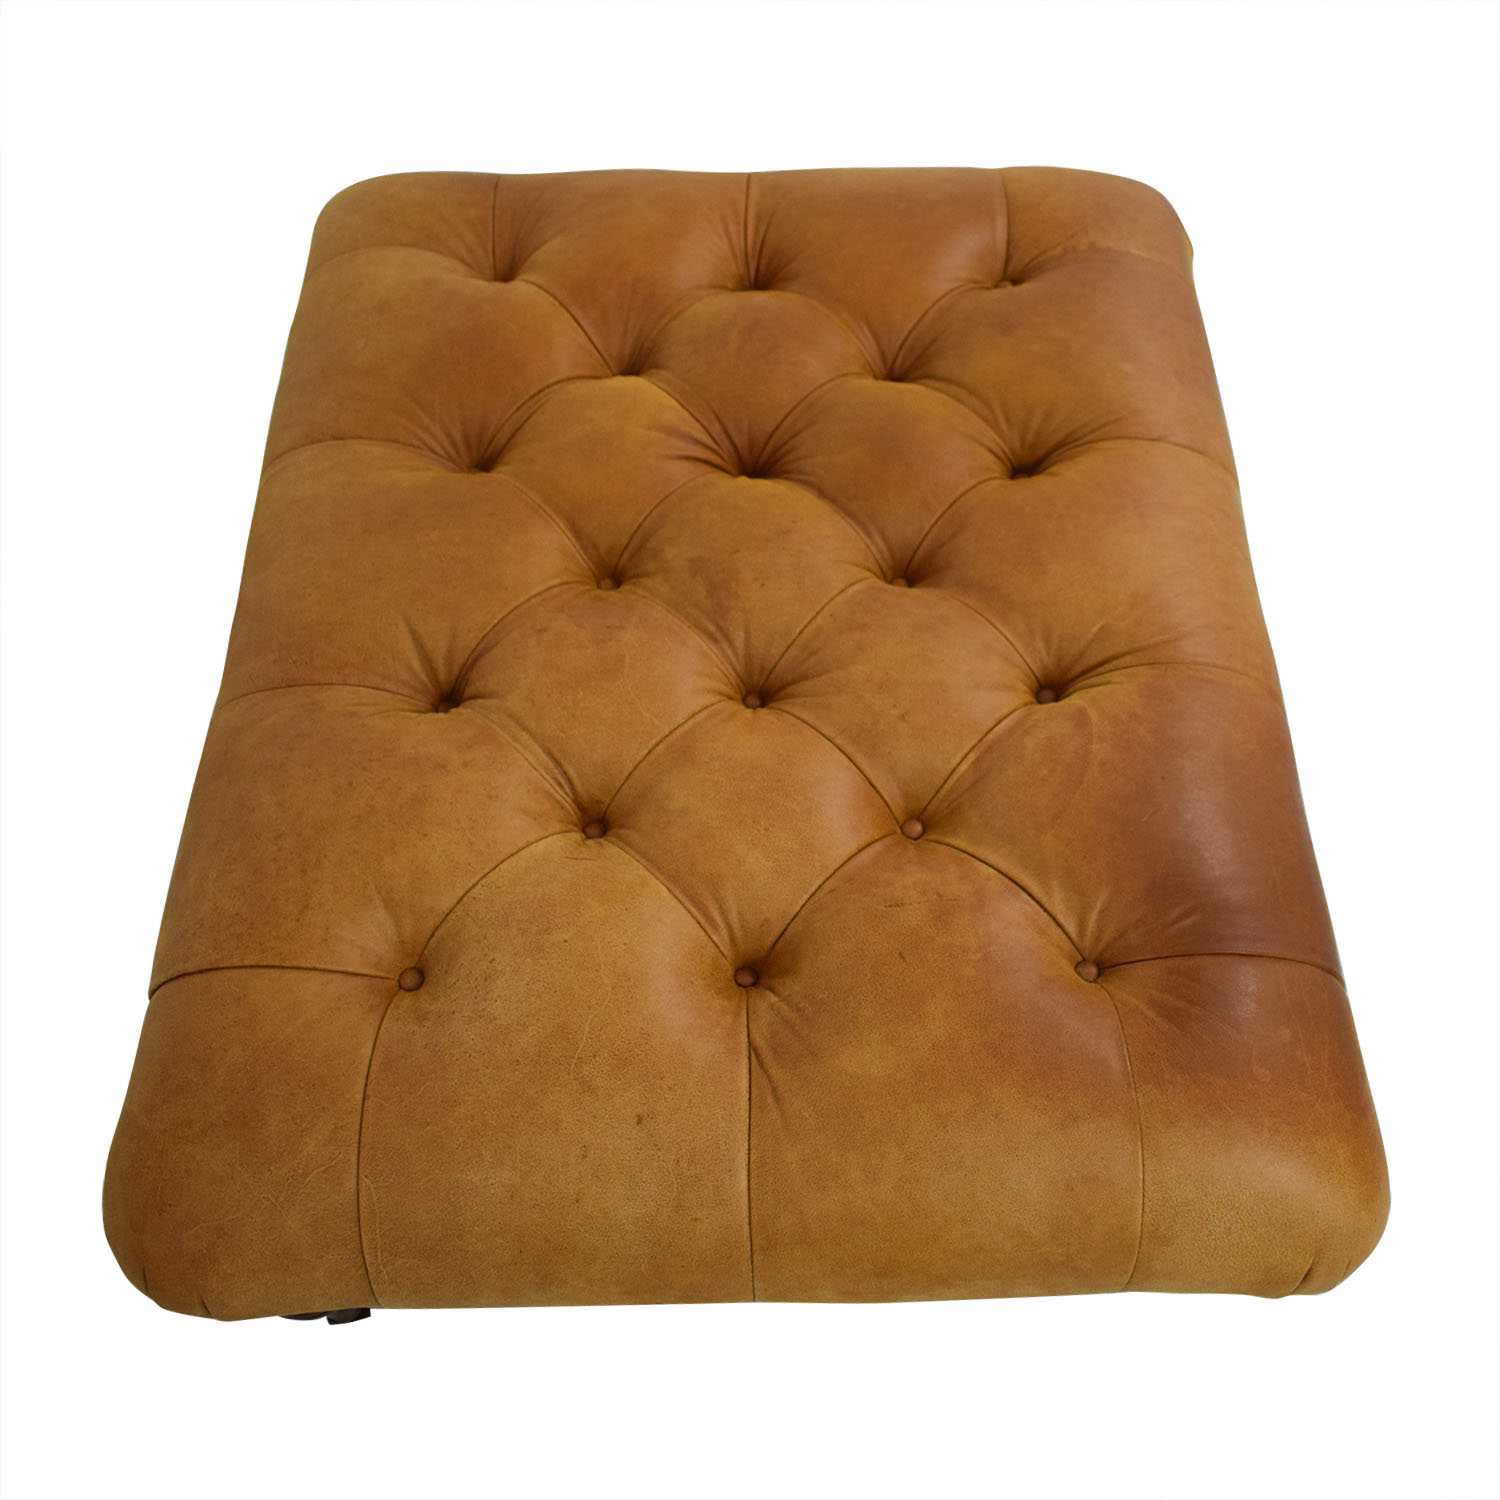 buy Laura Ashley Laura Ashley Radley Leather Ottoman online